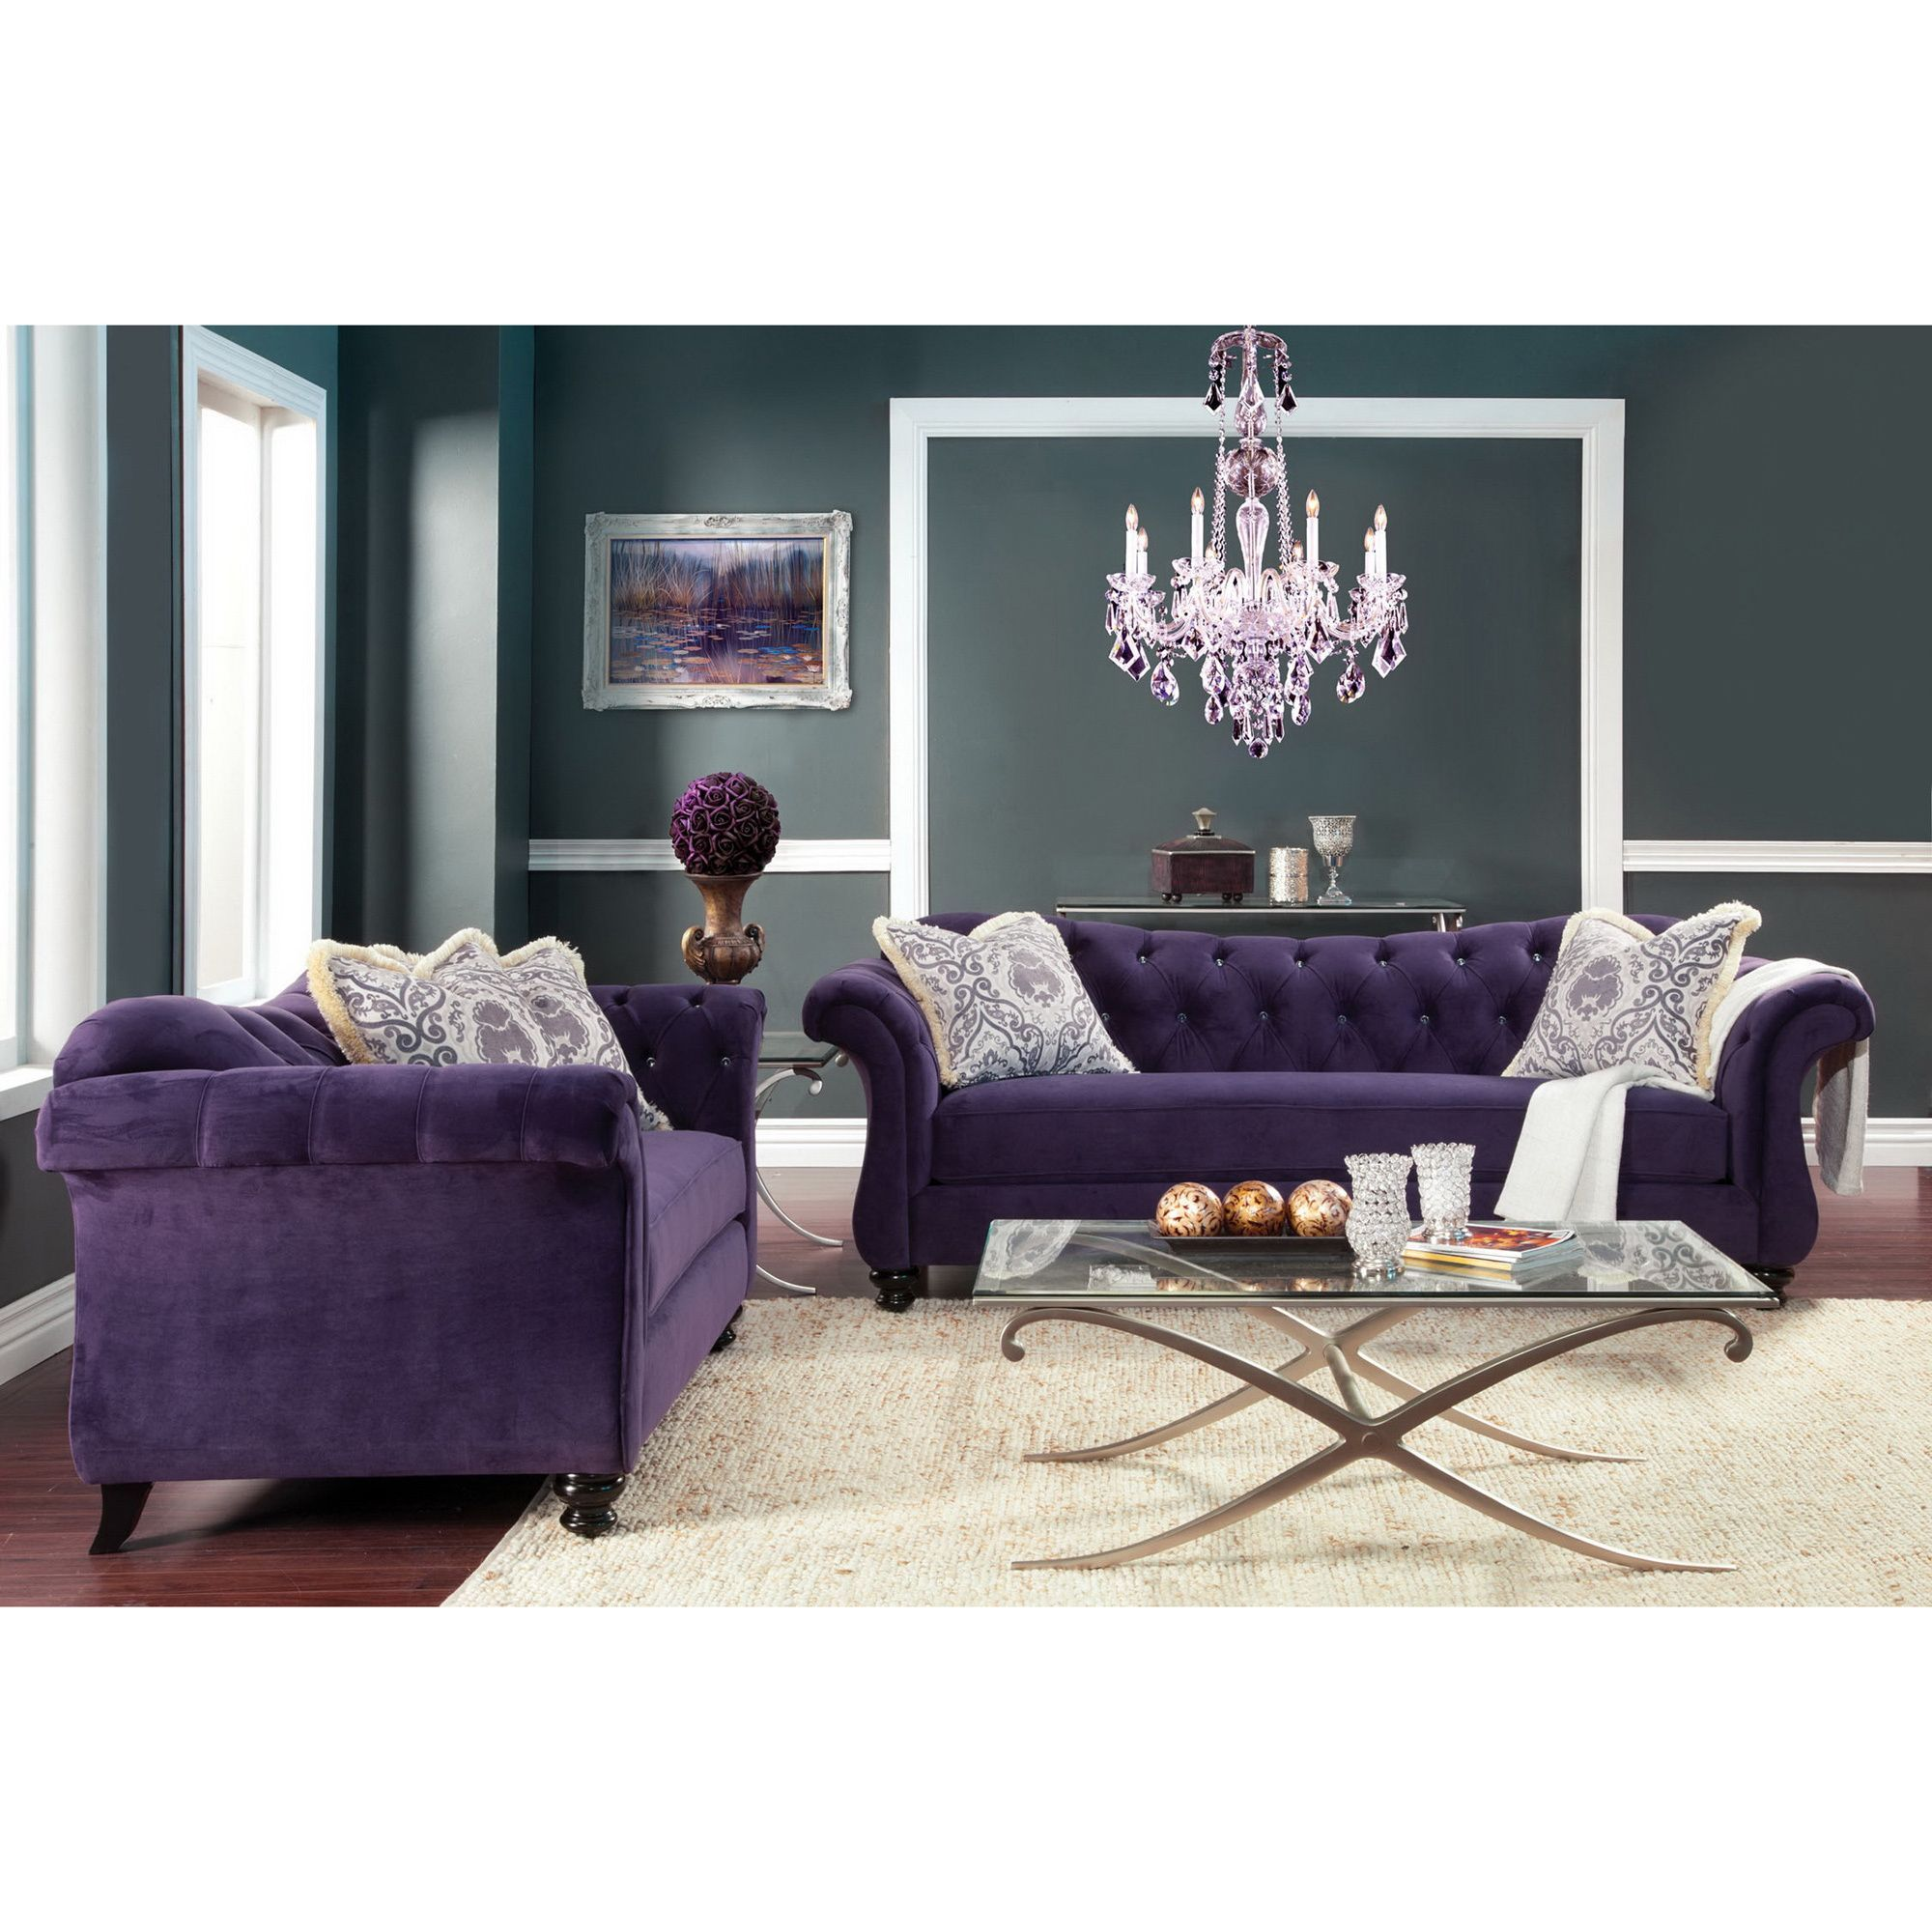 Sofa Set Offer Up This Sofa And Loveseat Set Offers Premium Padded Cushions